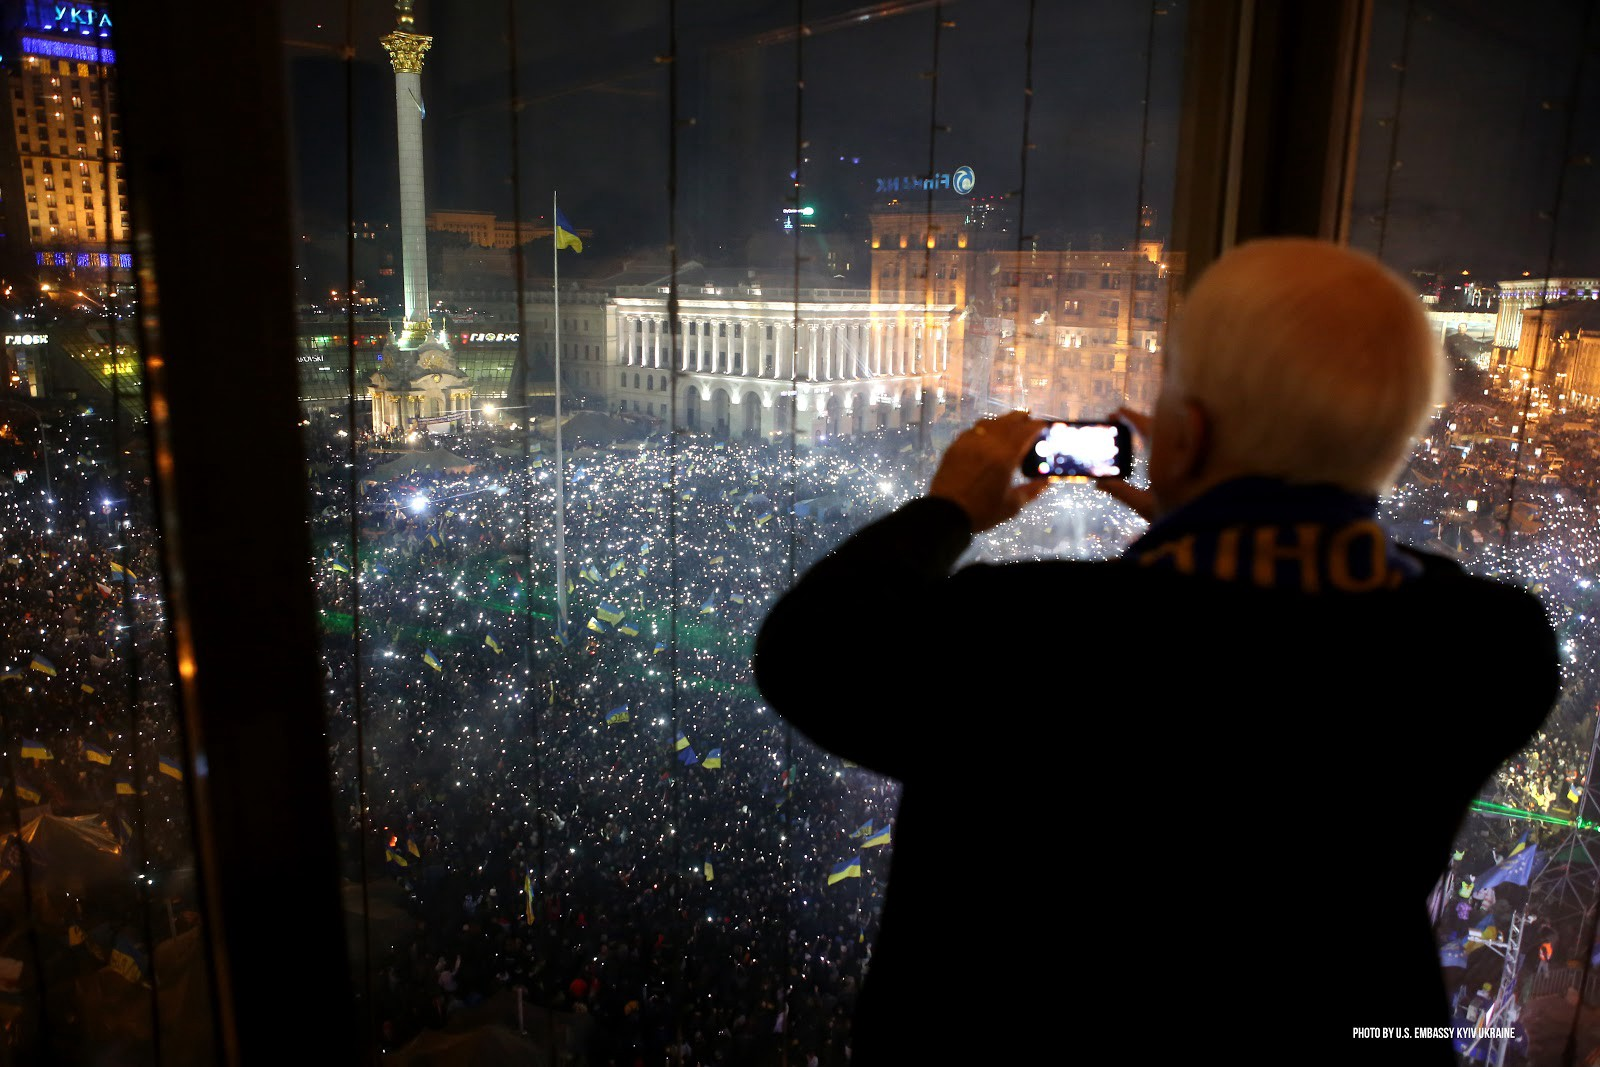 Late Senator John McCain watches the Euromaidan protests in Kyiv, Ukraine, December 2013.